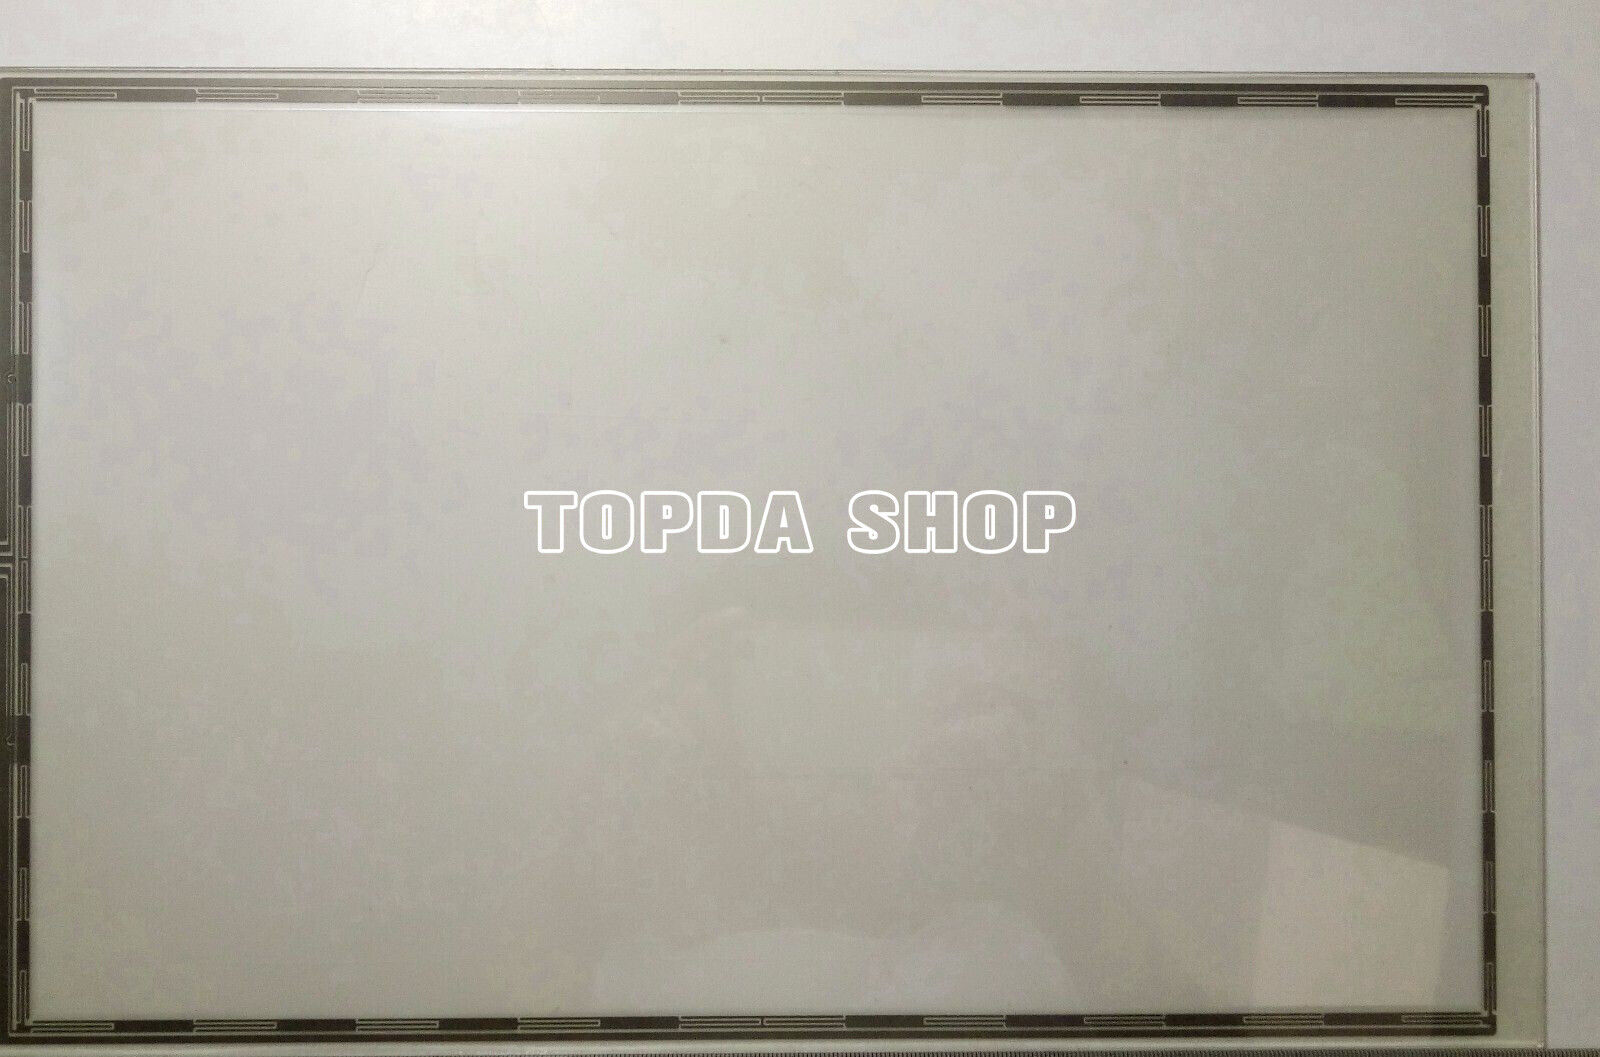 1pc CTC PARKER P31-3C2-A1-2A3 touch screen glass